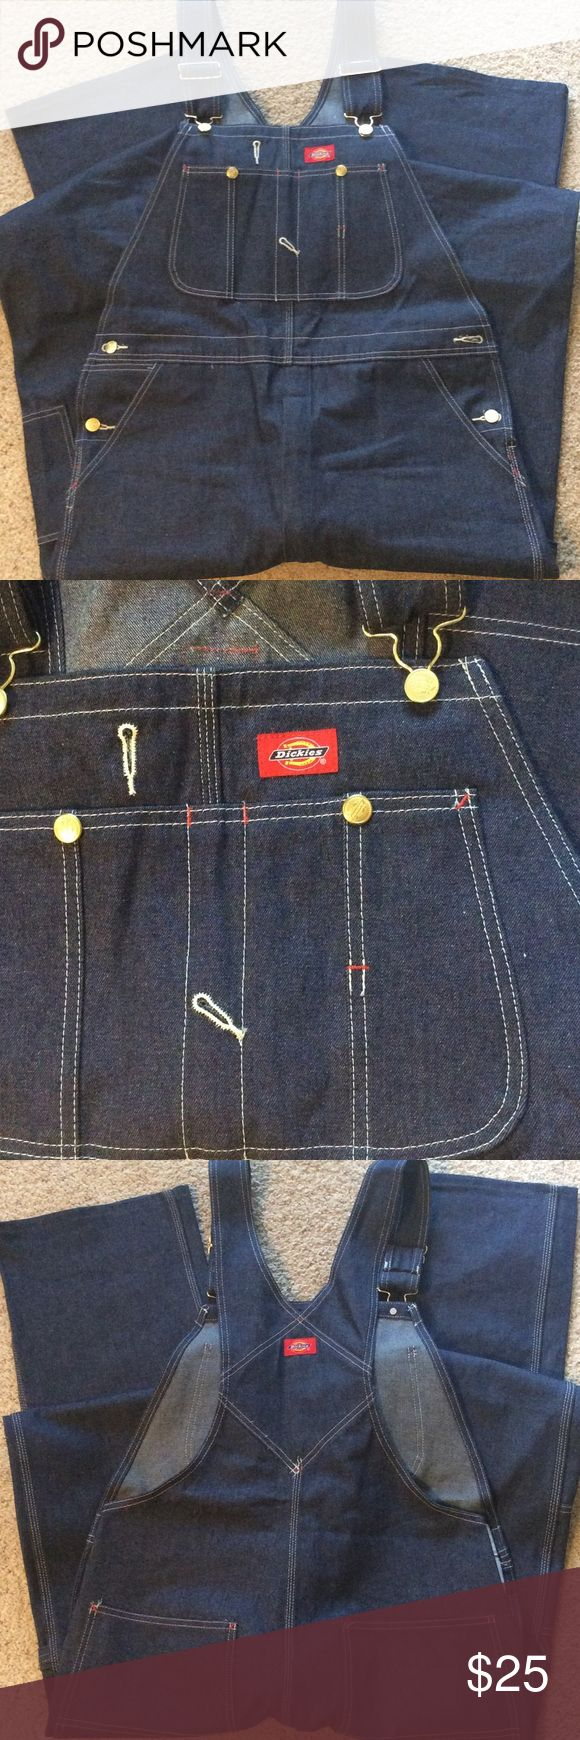 Dickies bib overalls. Brand new. Size 34 x 36. Brand new without tags. Indigo Bib Overalls. Size 34 x 36. Nice! Dickies Jeans